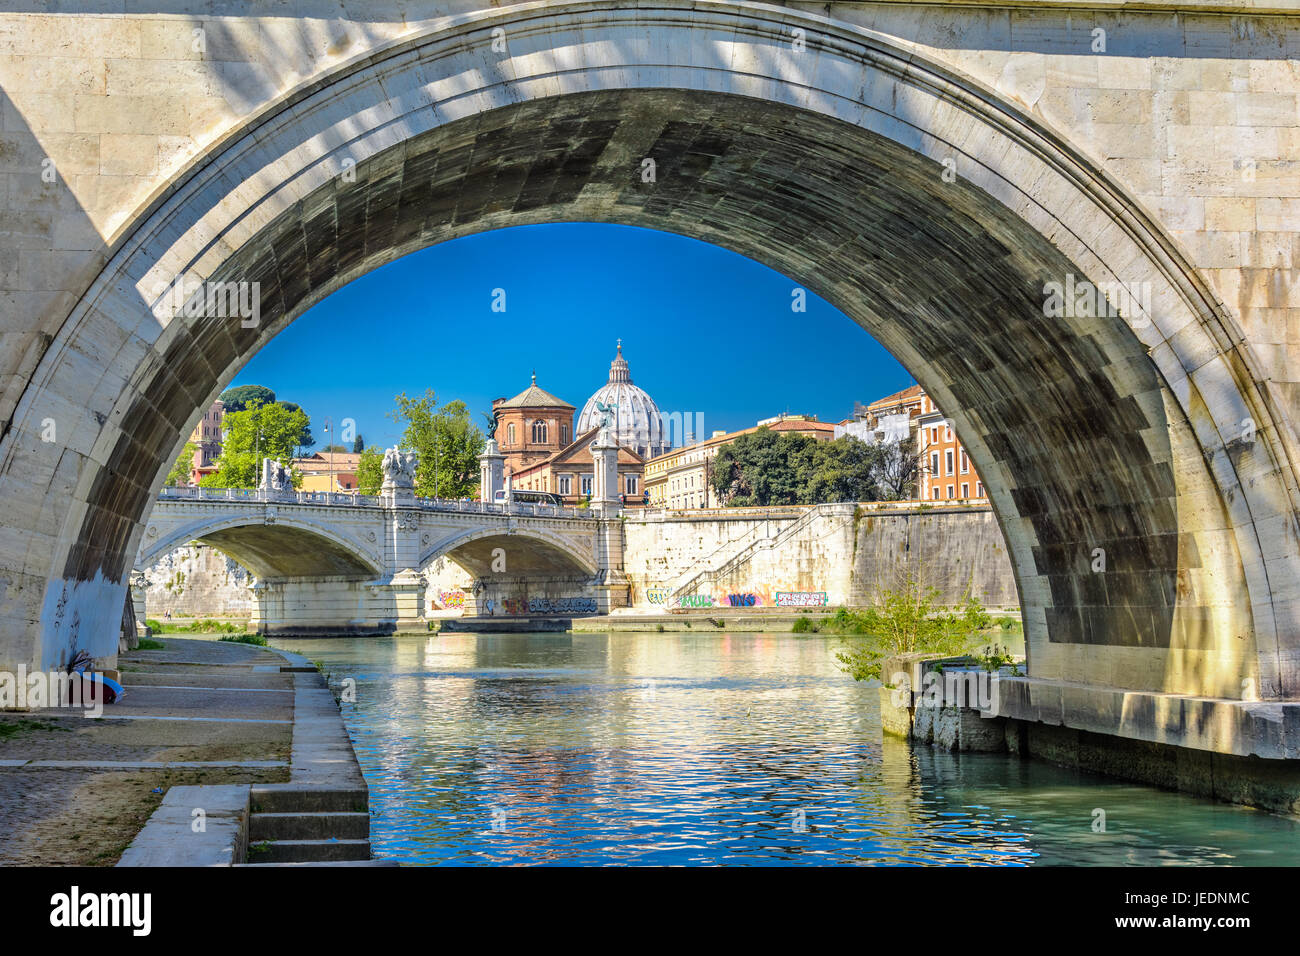 View of the Vatican with bridges over the Tiber river, Rome, Italy - Stock Image